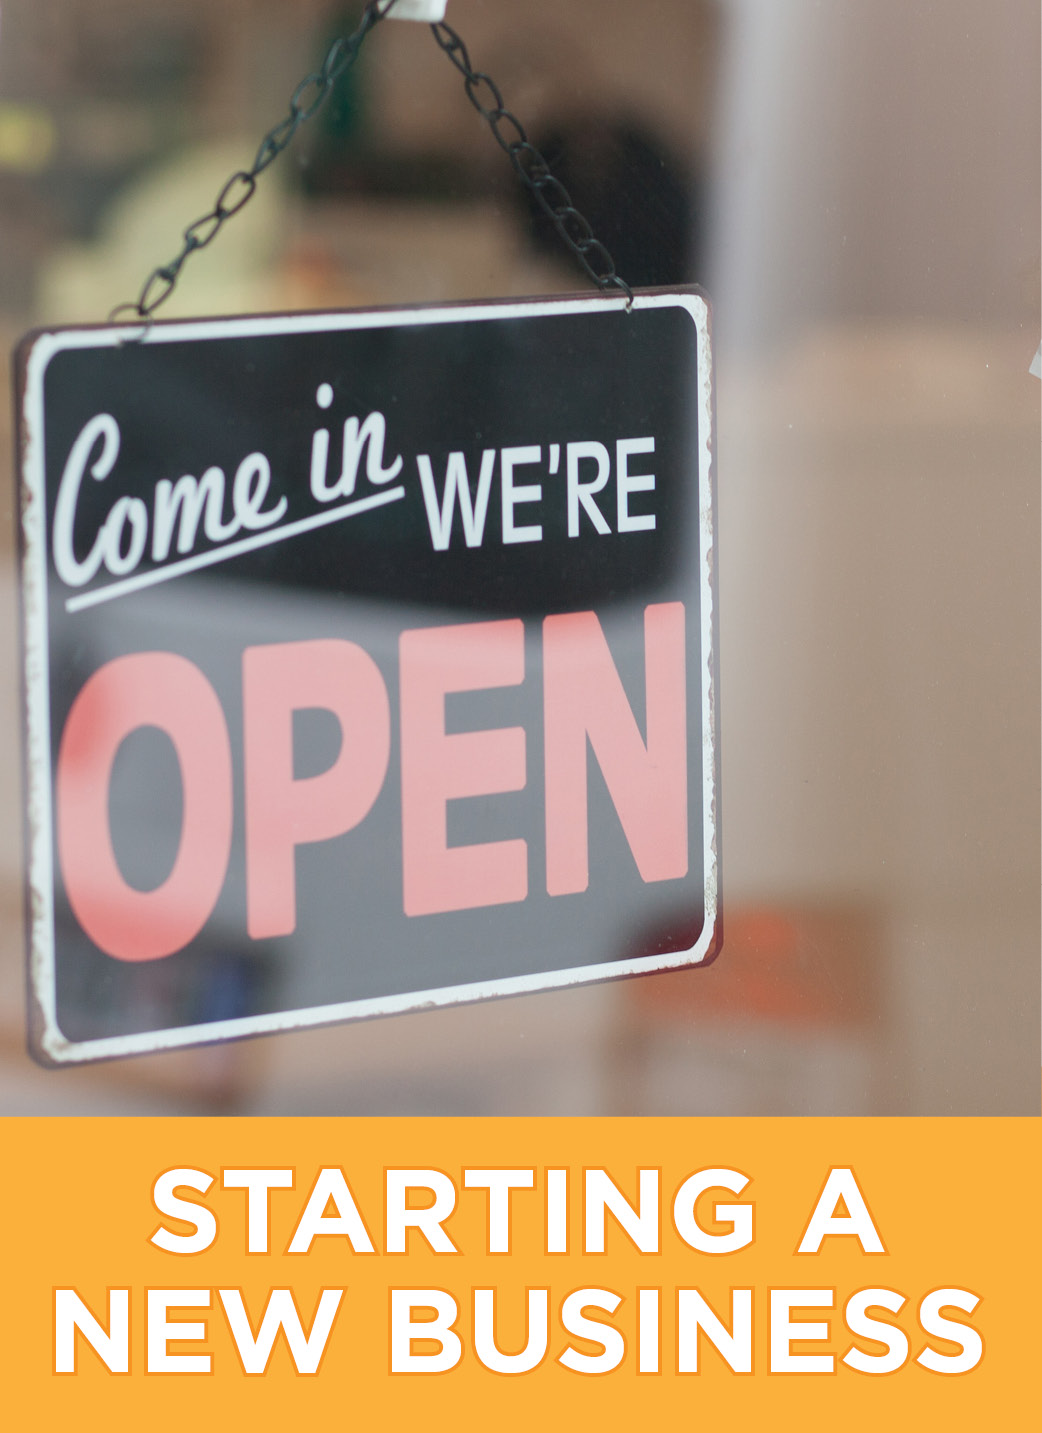 Link to learn about starting a new business